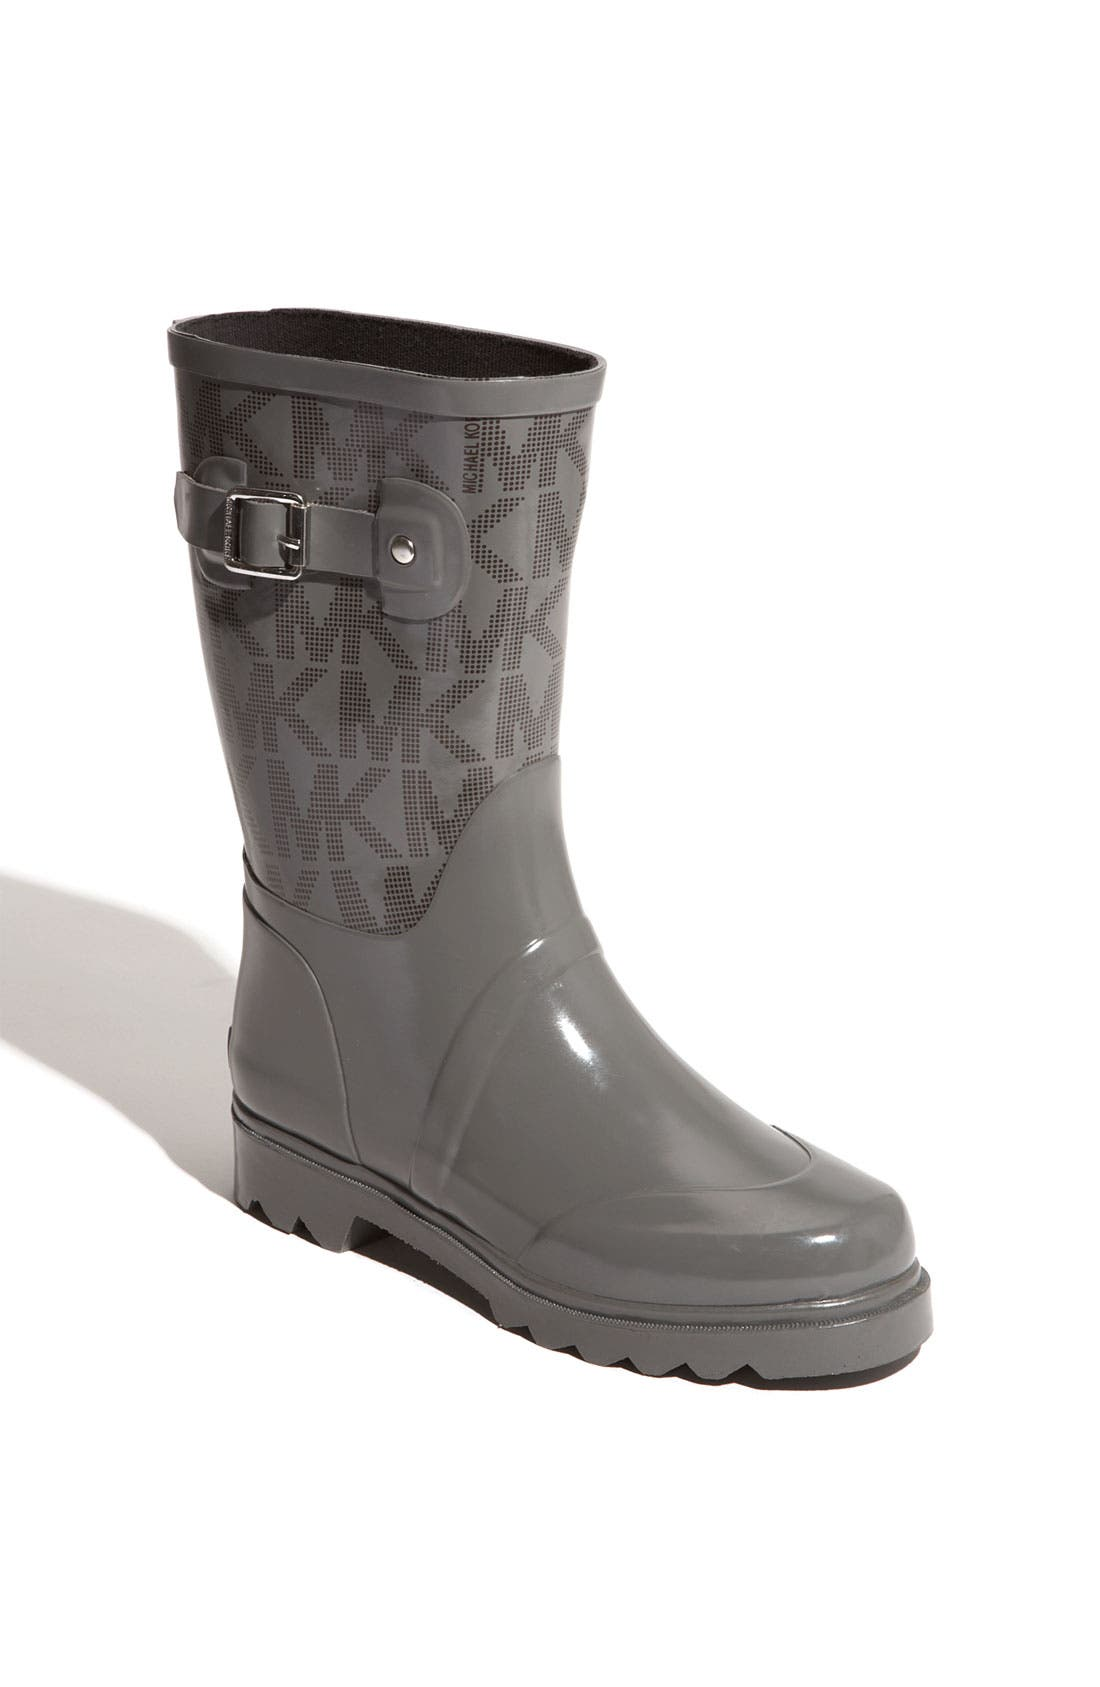 Alternate Image 1 Selected - MICHAEL Michael Kors 'Logo - Mid' Rain Boot (Women)